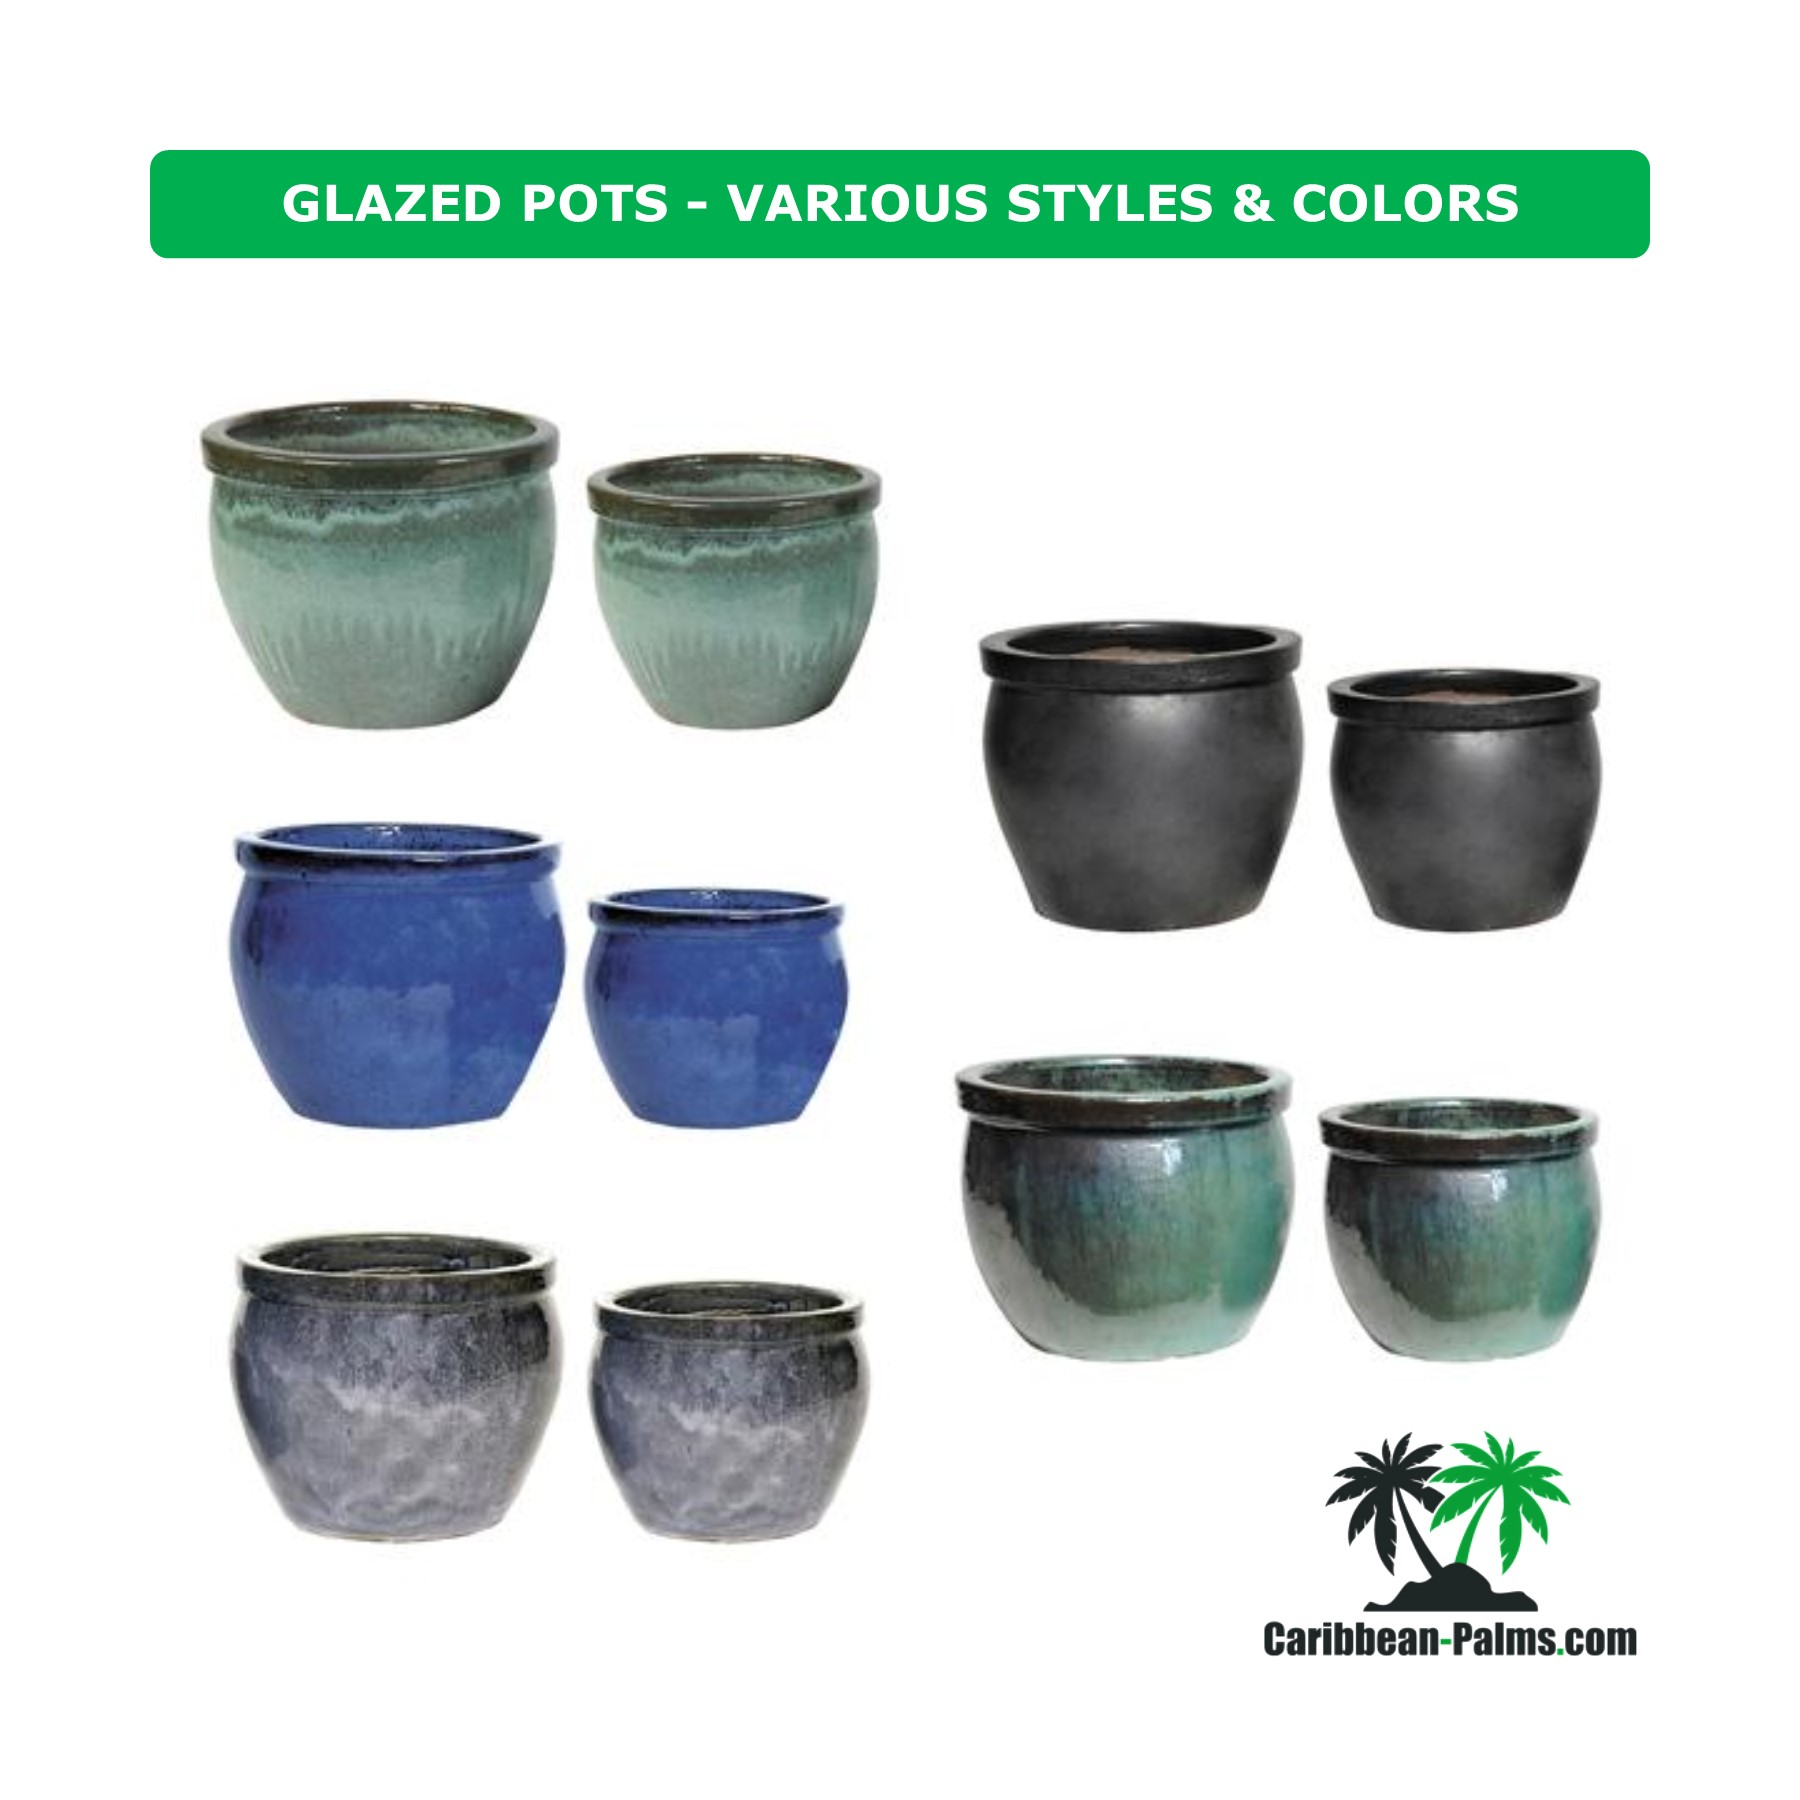 GLAZED POTS VARIOUS STYLES COLORS 2